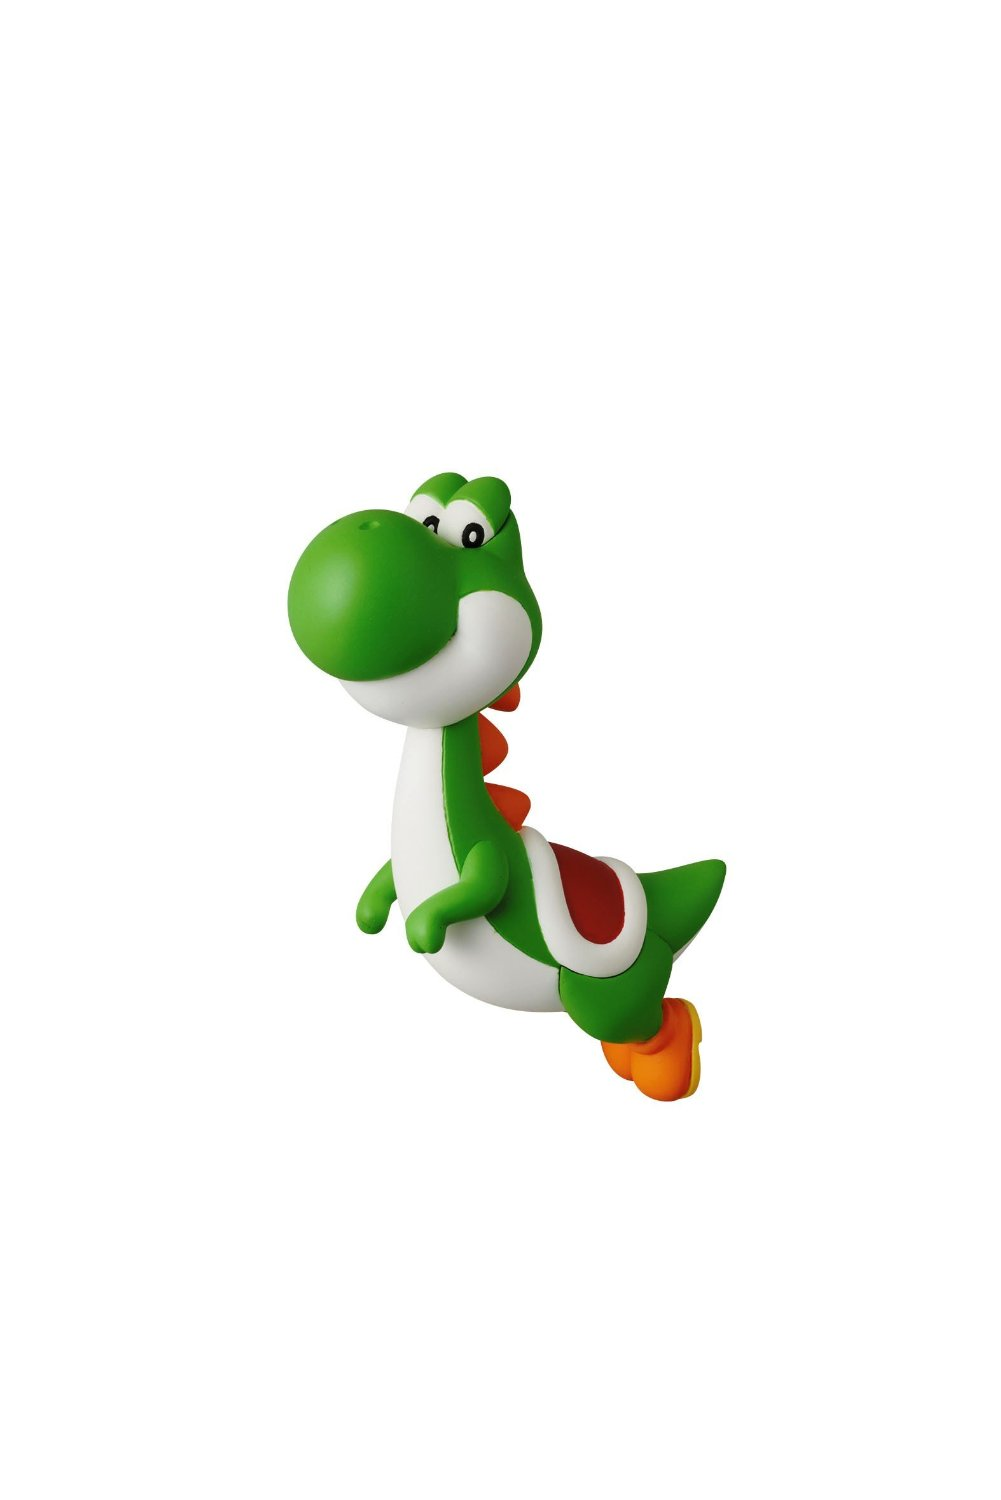 Medicom Nintendo Super Mario Bros. Ultra Detail Figure Series 2: Super Mario World Yoshi UDF Action Figure